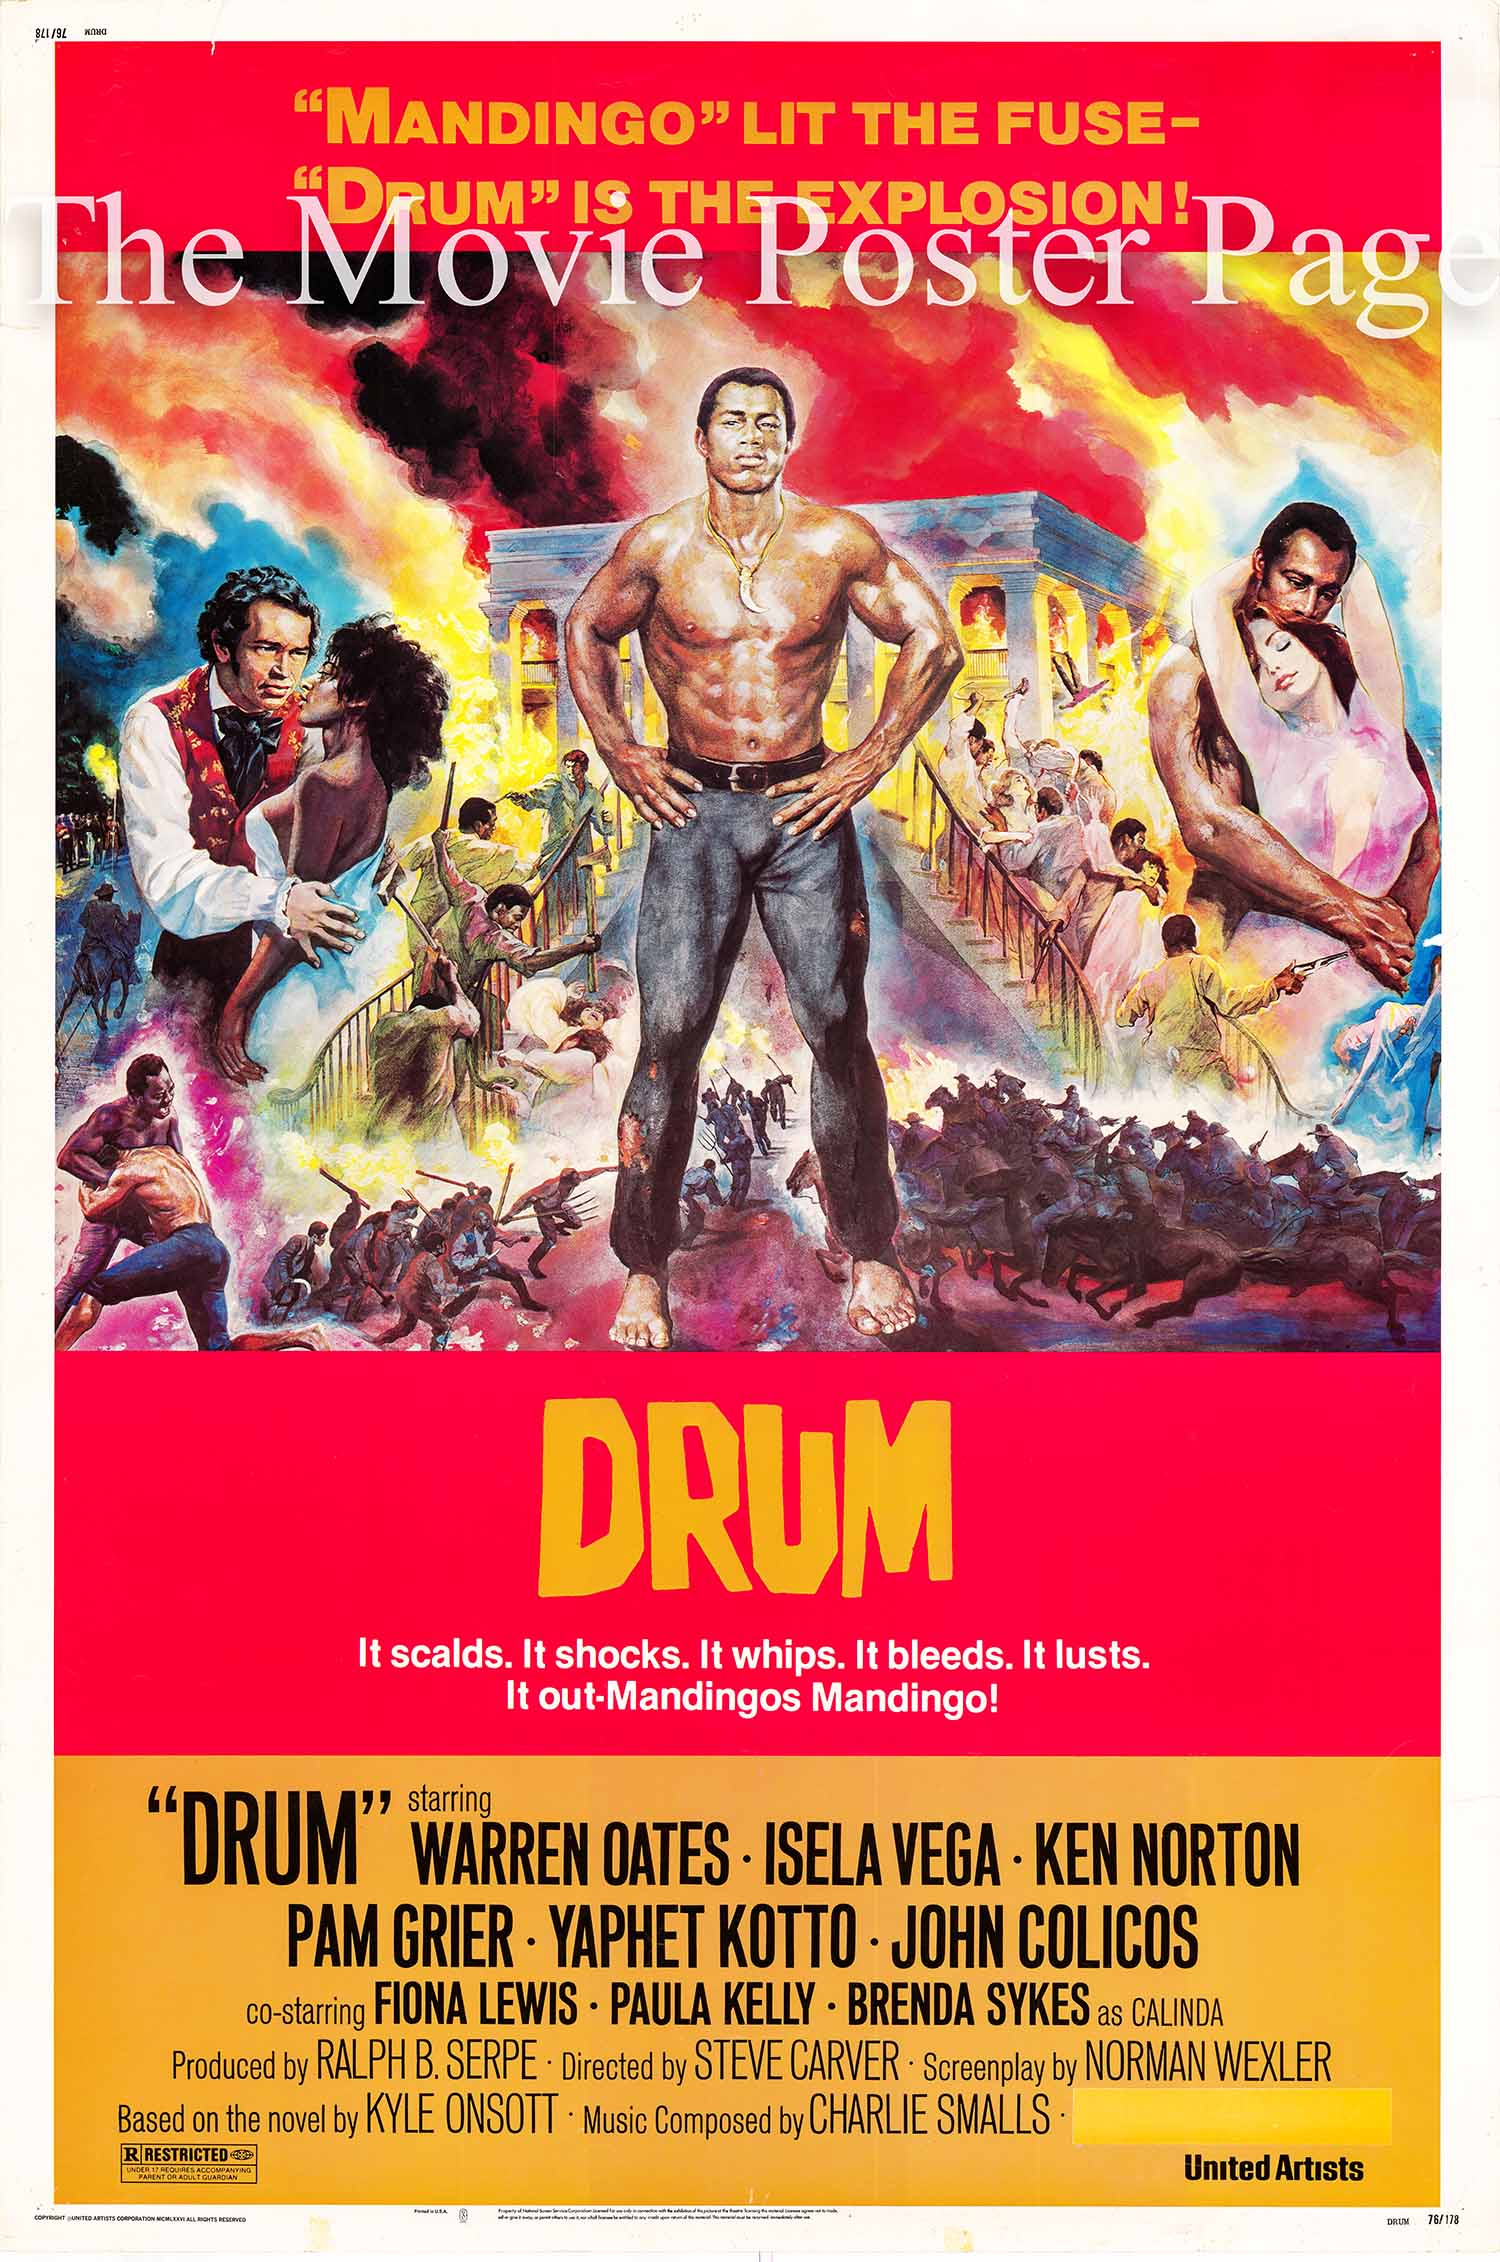 Pictured is a US one-sheet promotional poster for the 1976 Steve Carver film Drum starring Ken Norton and Warren Oates.